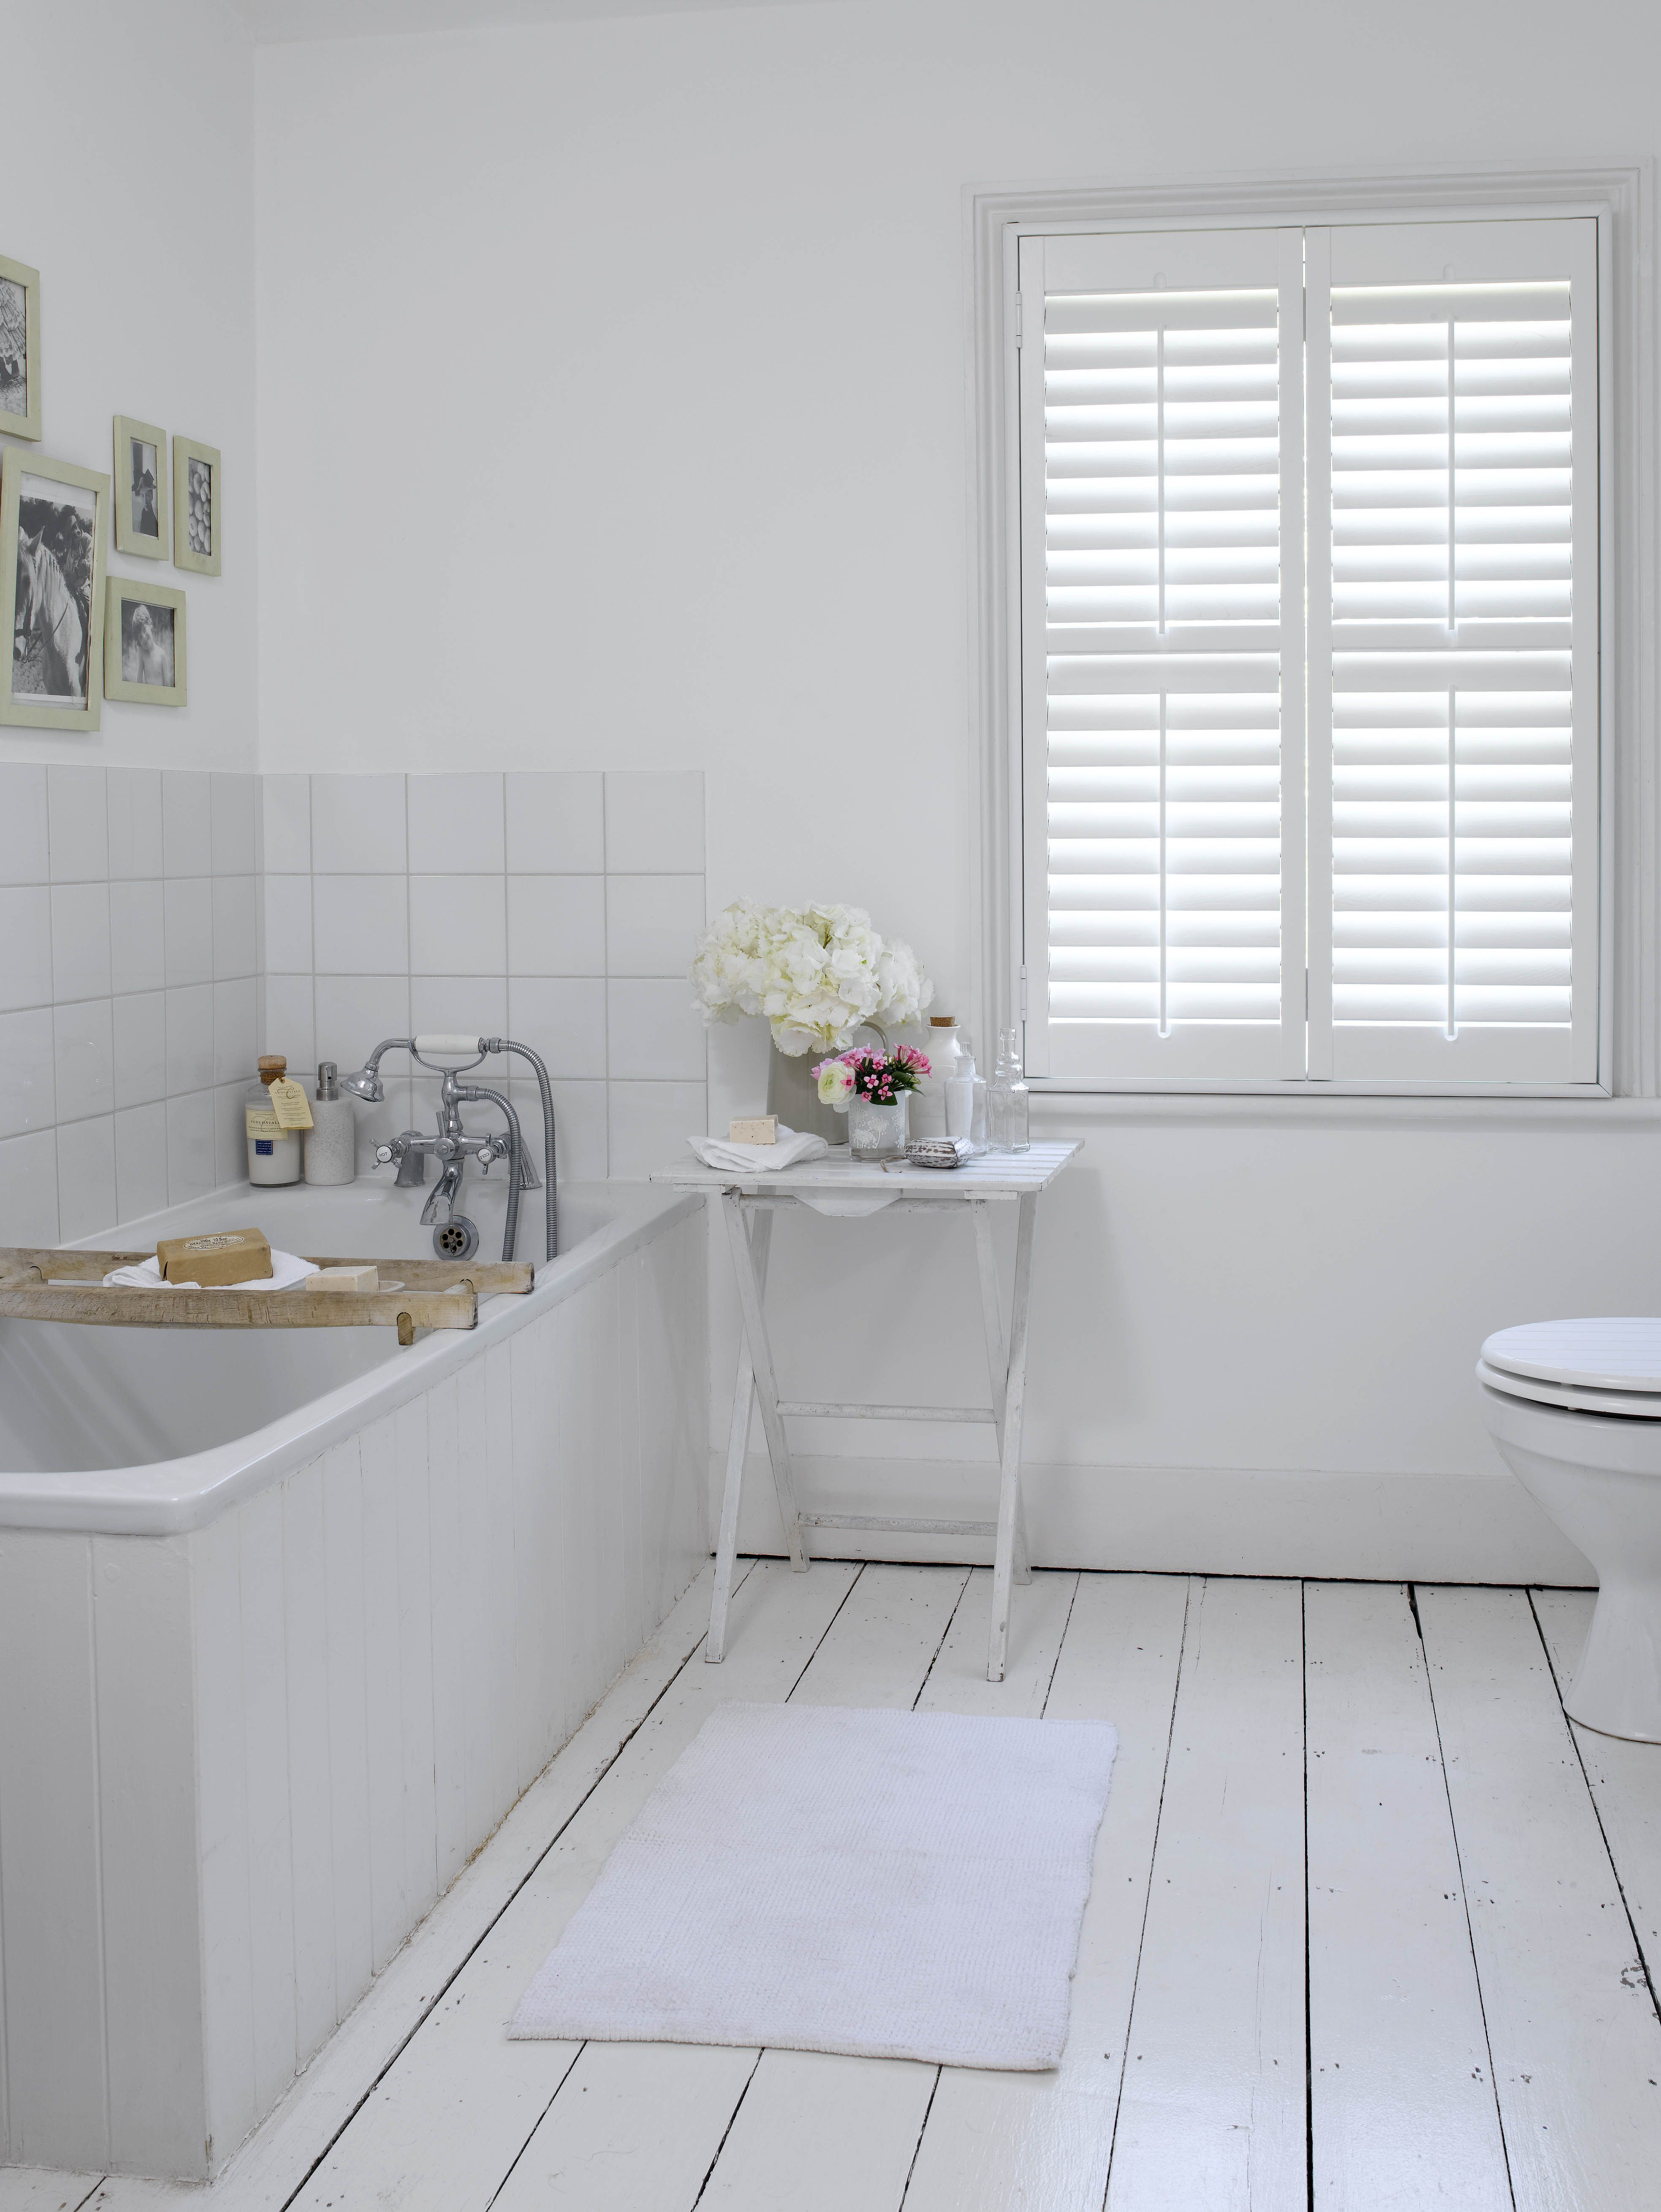 Full Height Elm Wood Shutters In Cloudy White Paint Finish With 2 5 Inch 64mm Slats And Regul Wood Floor Bathroom White Painted Wood Floors Bathroom Flooring